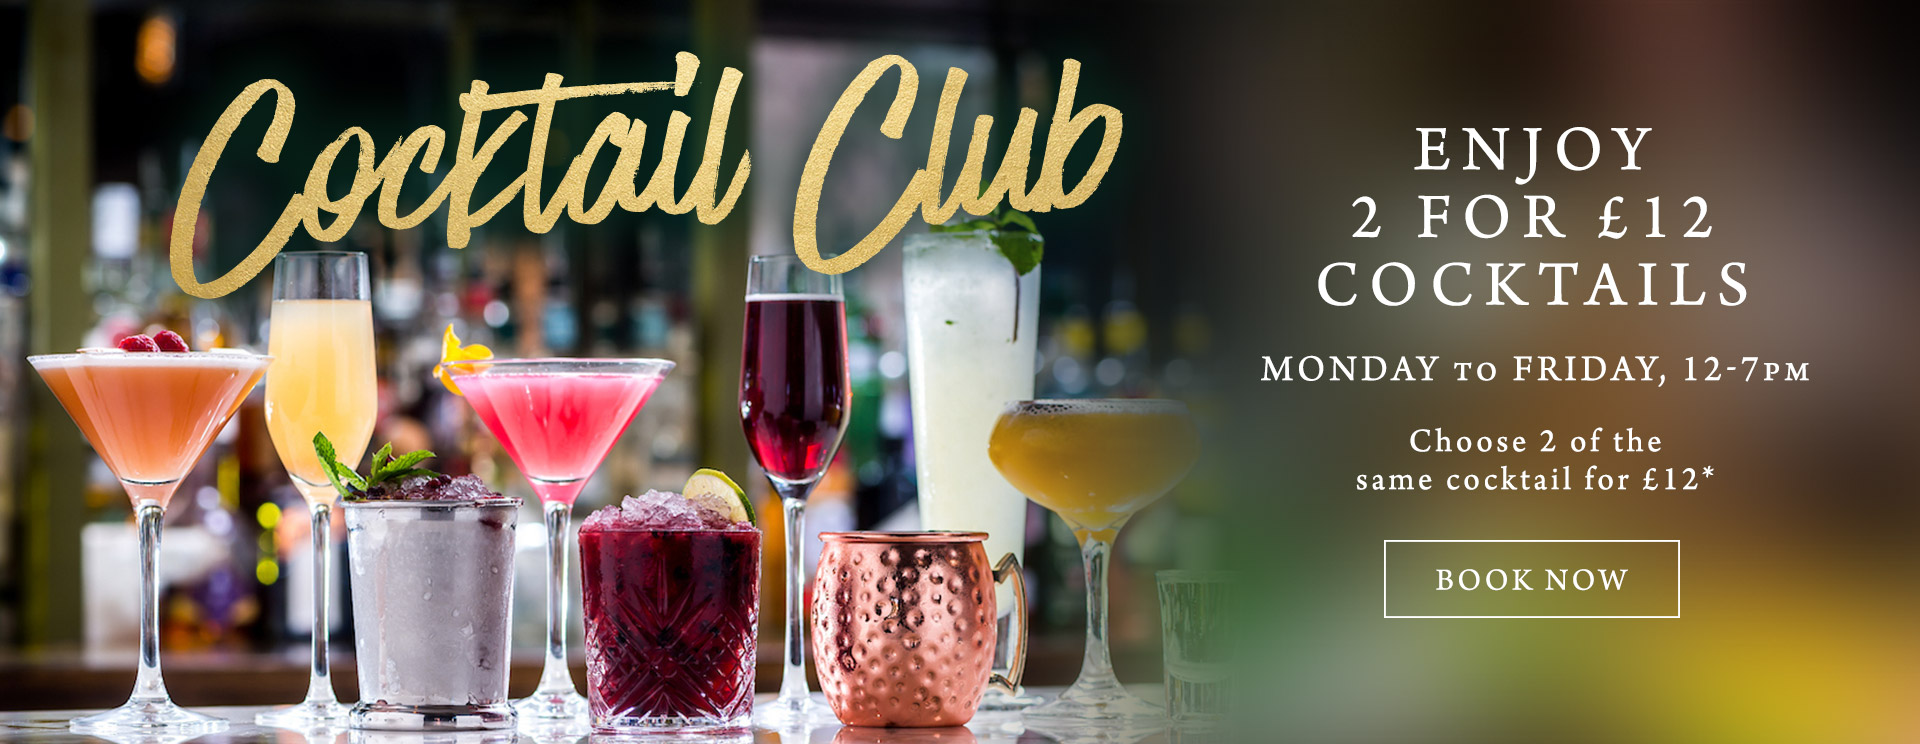 2 for £12 cocktails at The Green Man